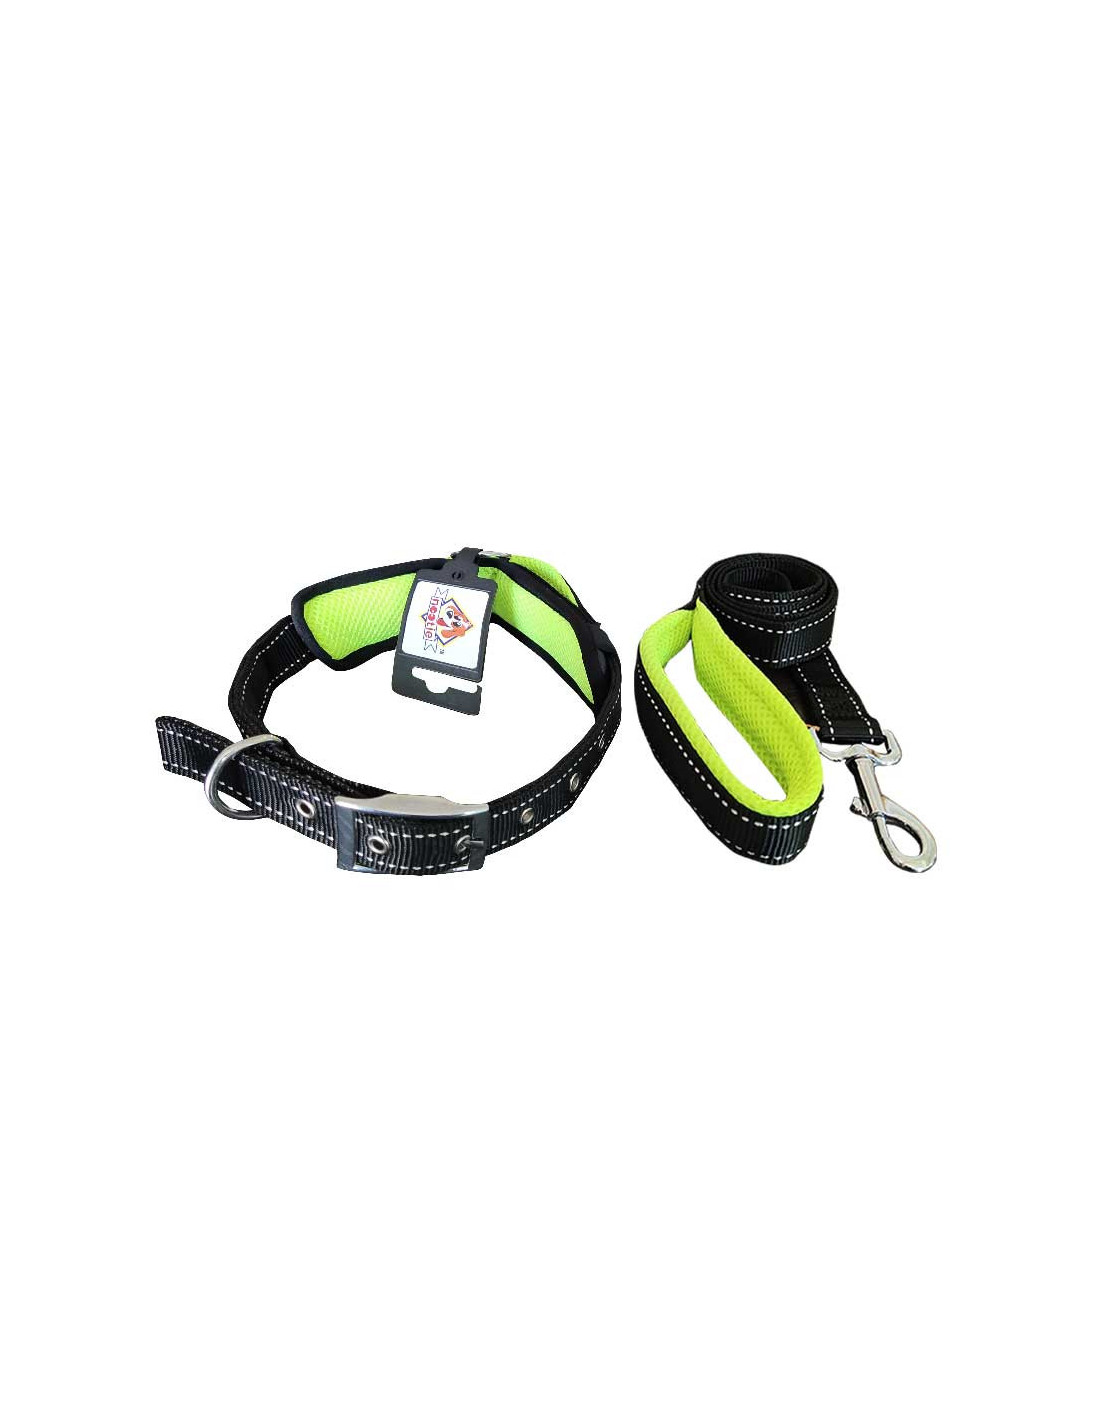 Nootie Mesh Green Collar Amp Leash Set For Dog At The Best